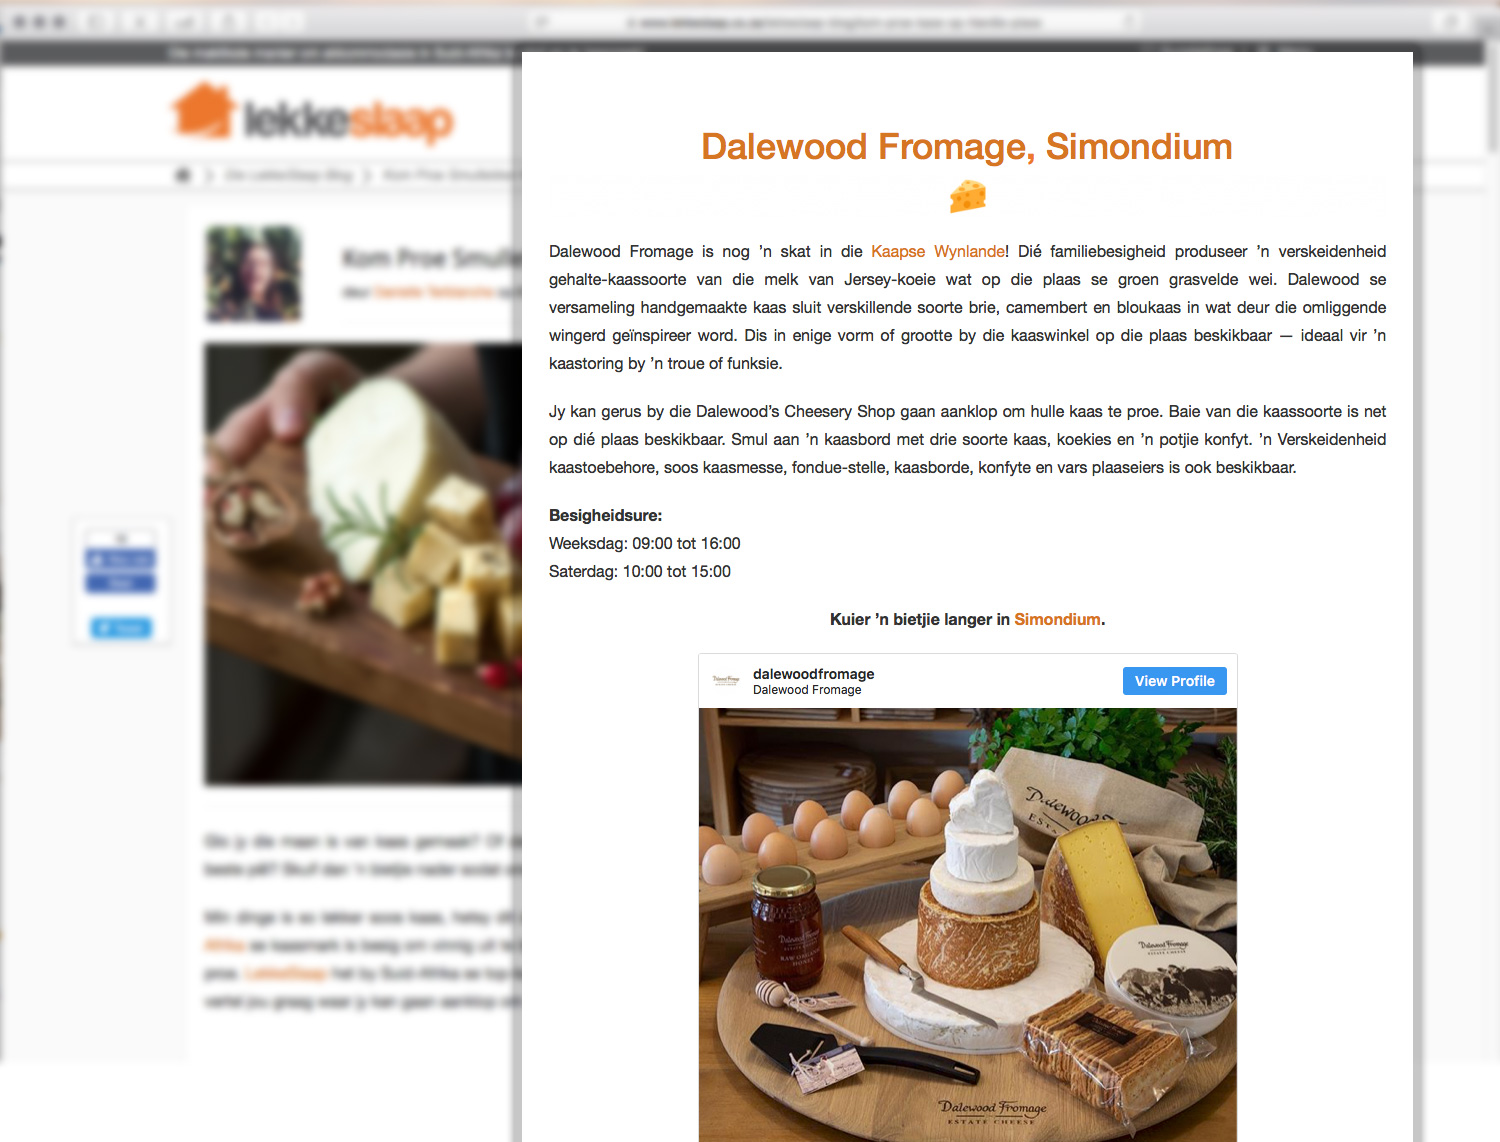 Lekkeslaap Kase features Dalewood Fromage